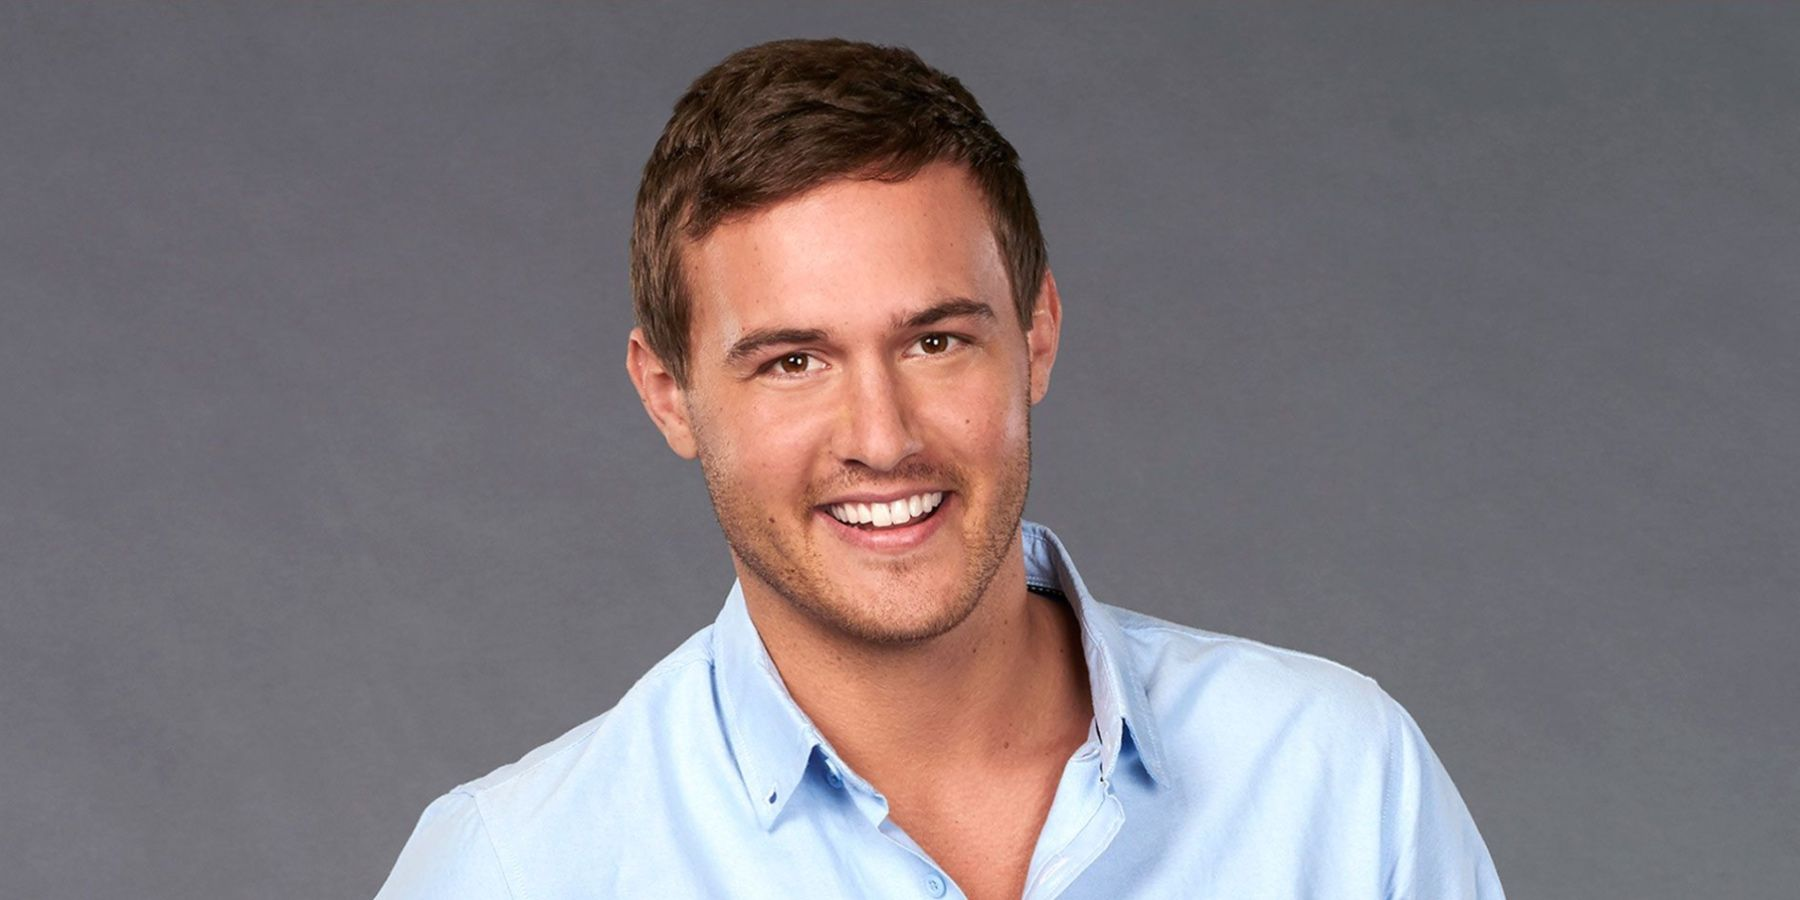 Bachelor Peter Weber Went 'Crazy' After Finding Out He Was Cast